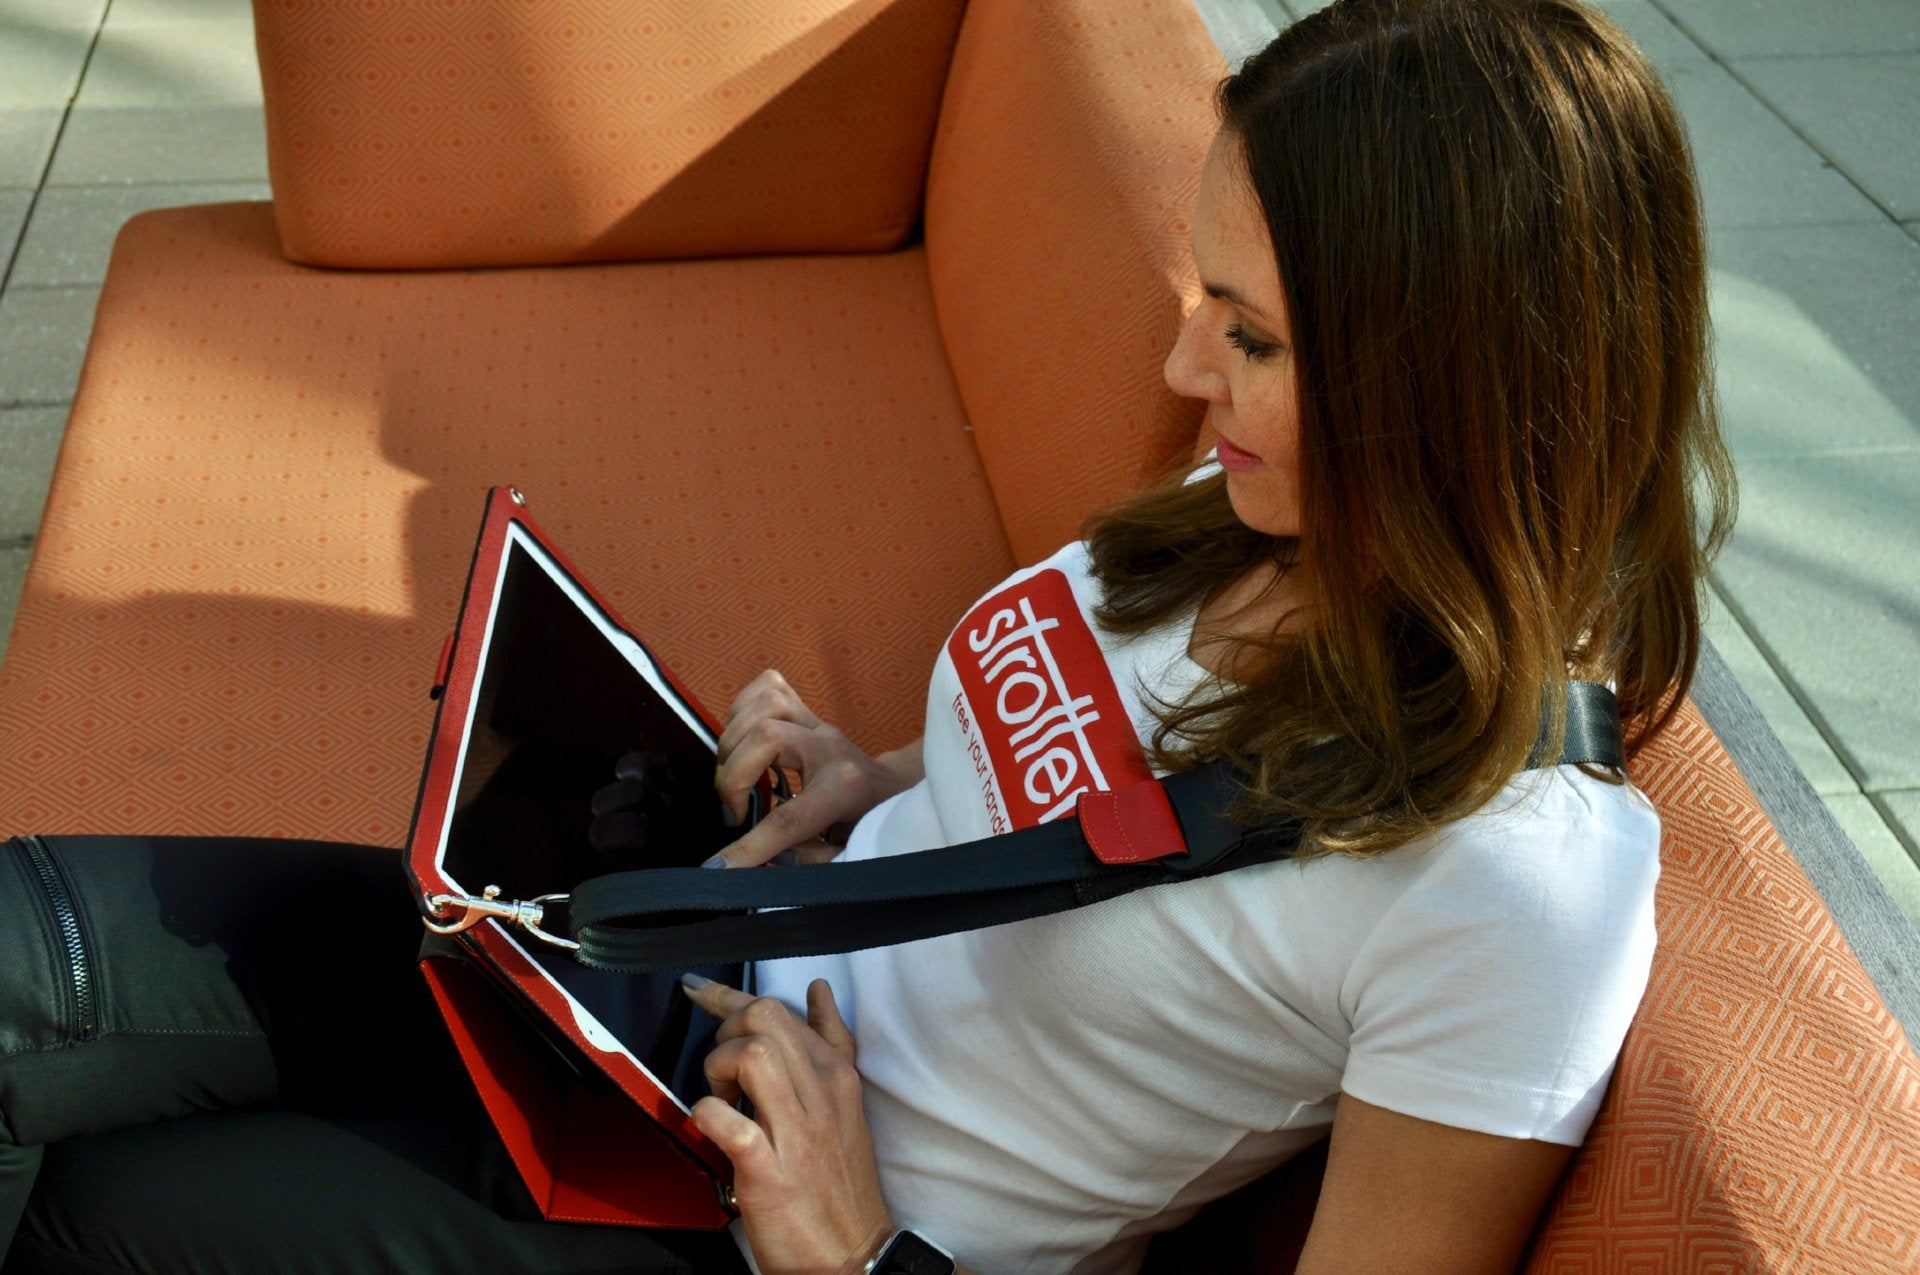 Mobile desk for iPad - free your hands!